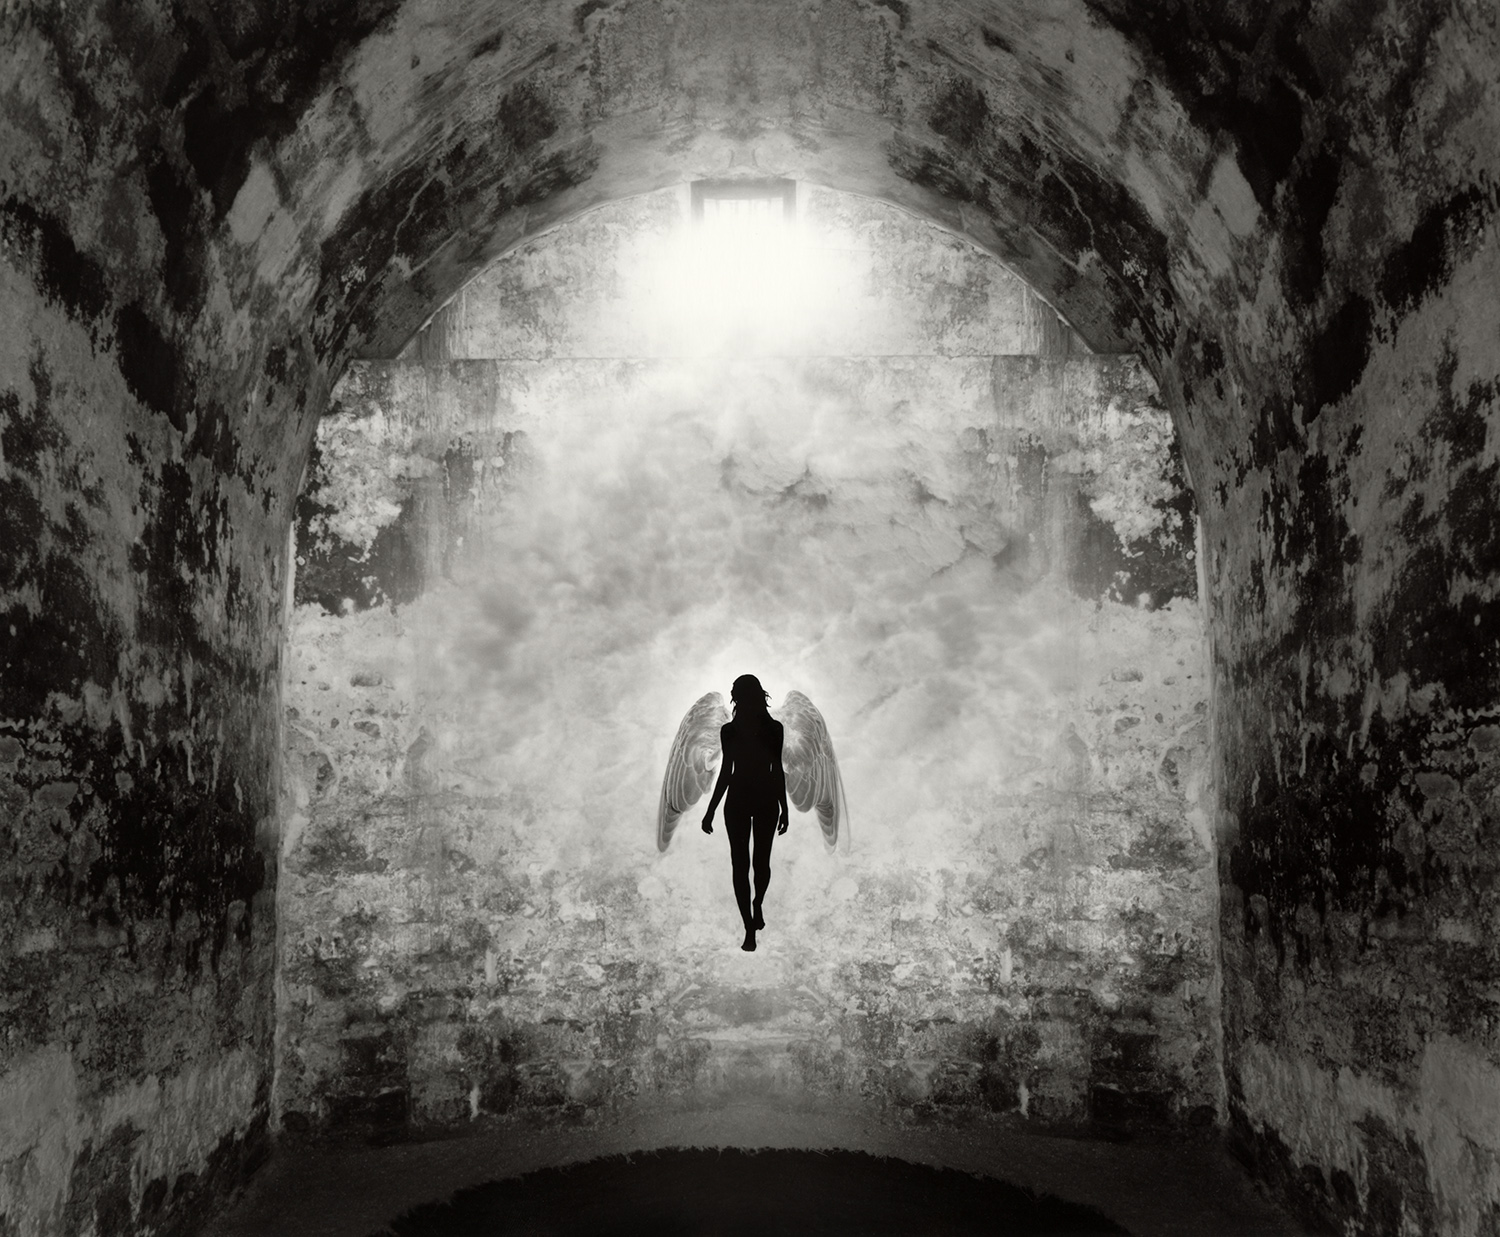 Jerry Uelsmann Apparition II Catherine Couturier Gallery